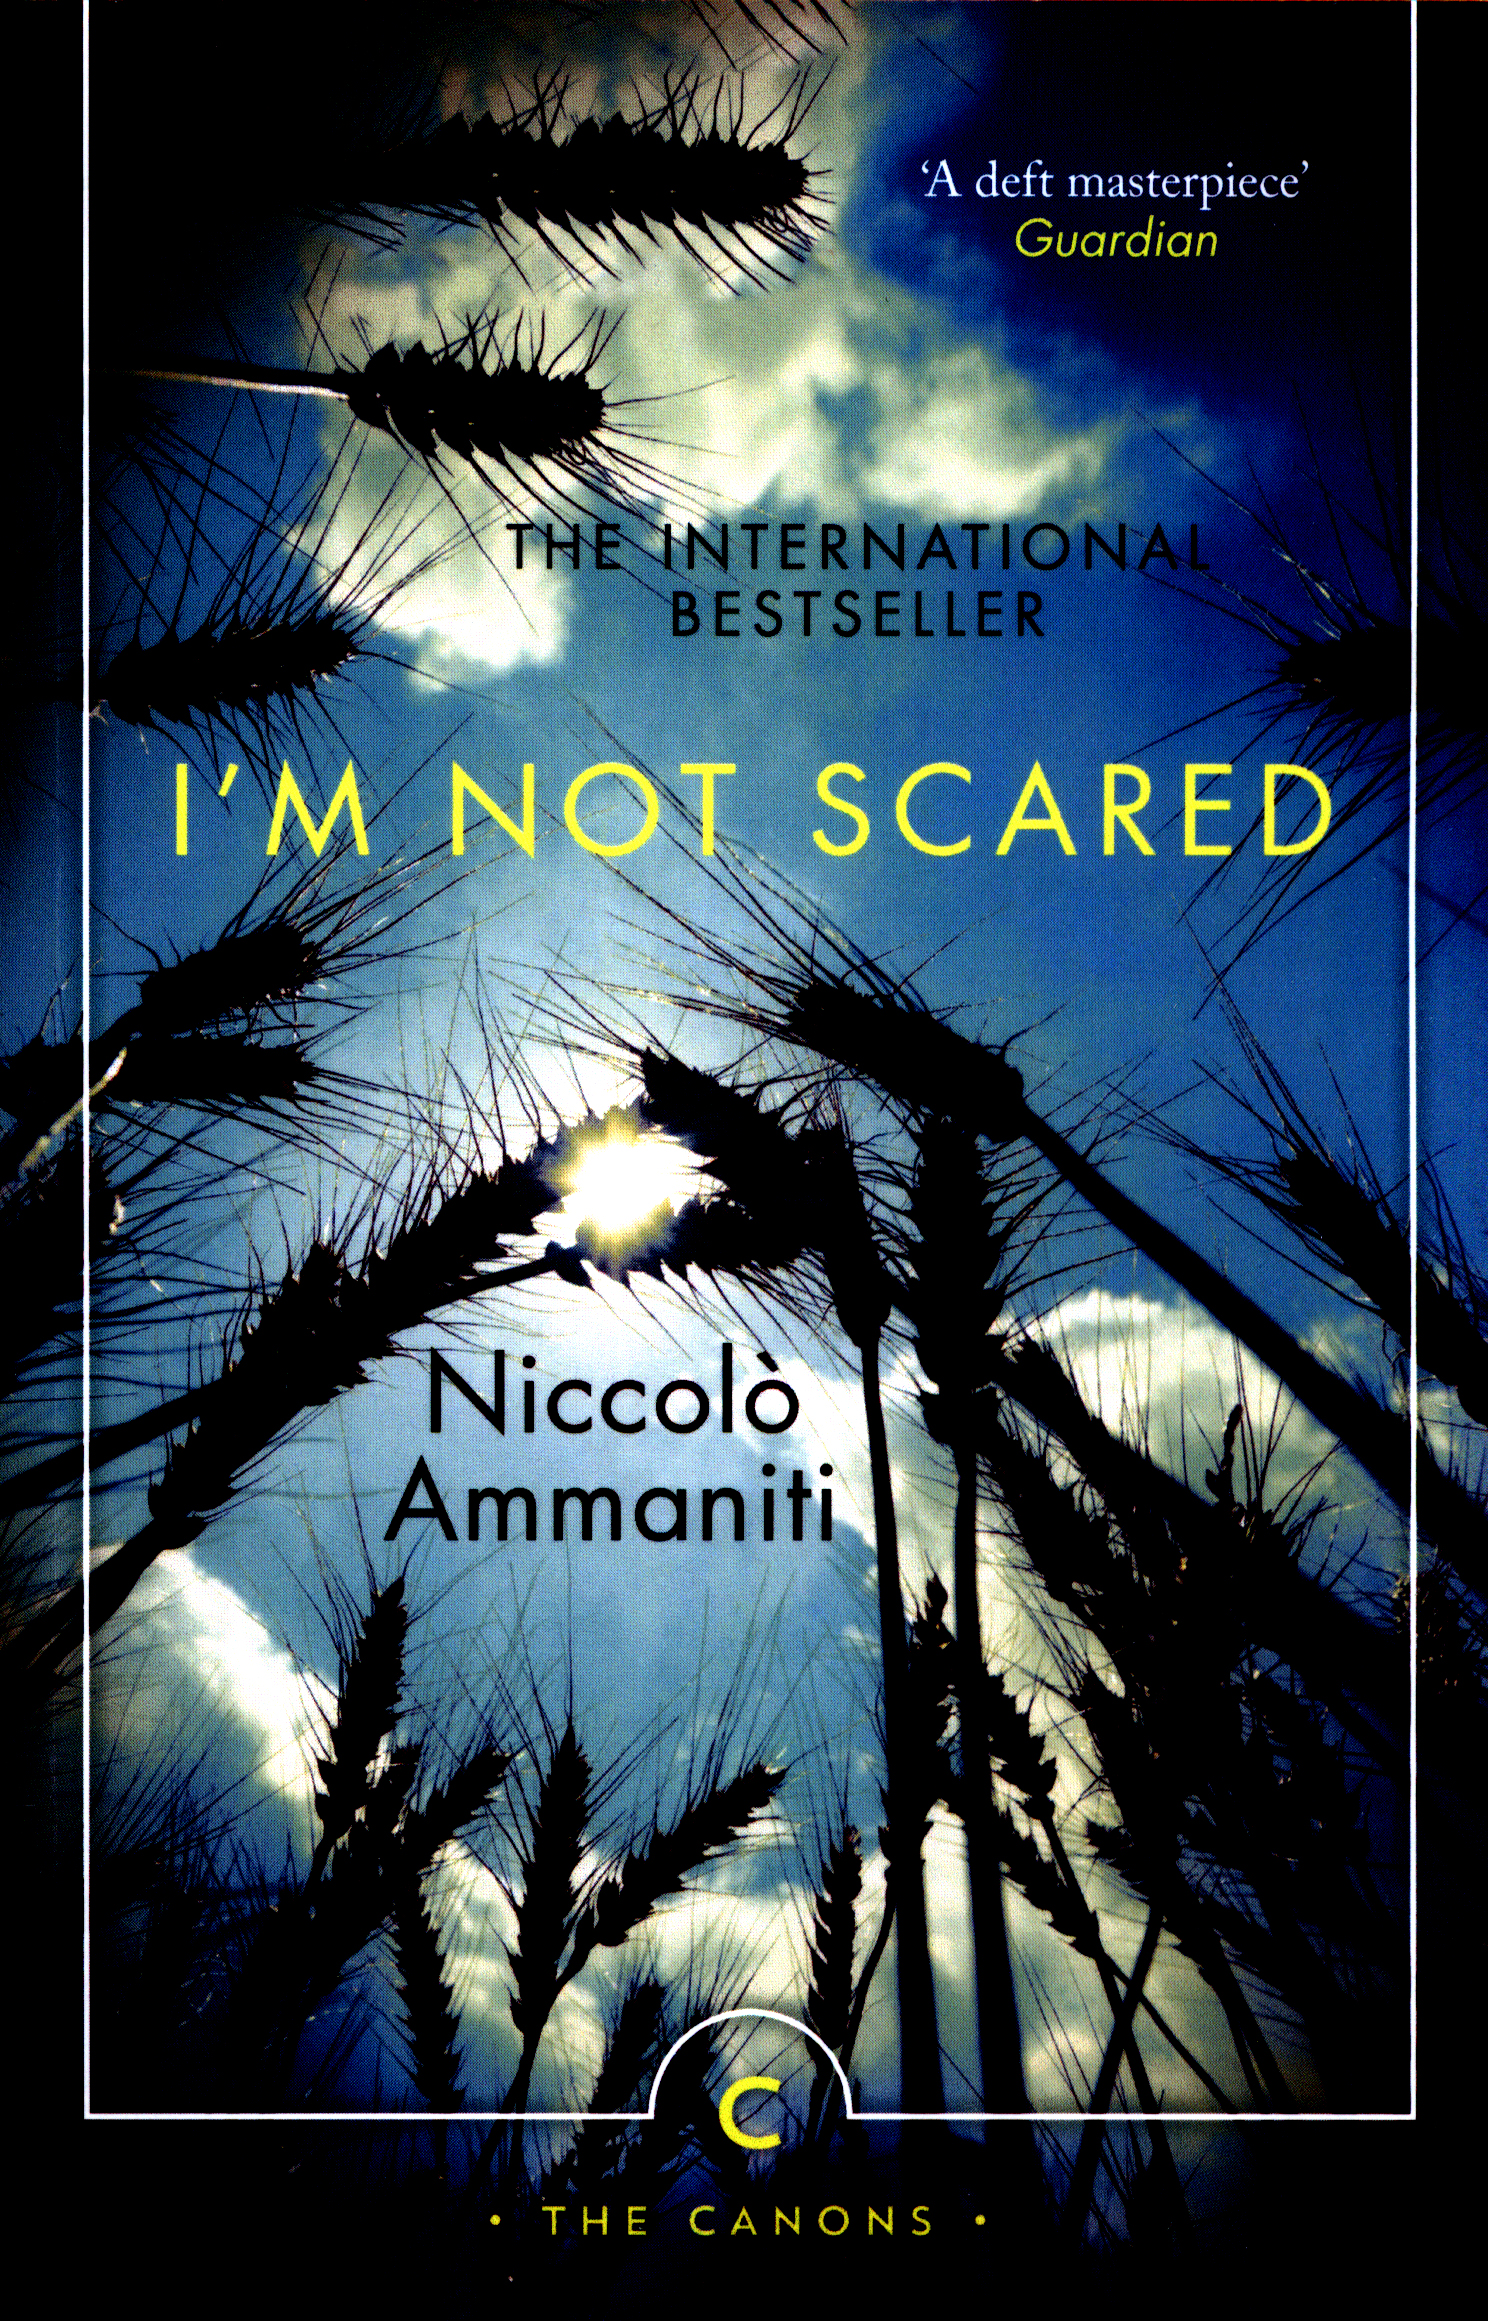 im not scared niccolo ammaniti essay Biggest and the best essays bank niccolo ammaniti essays, niccolo ammaniti papers throughout i m not scared, michele has to face many fears.